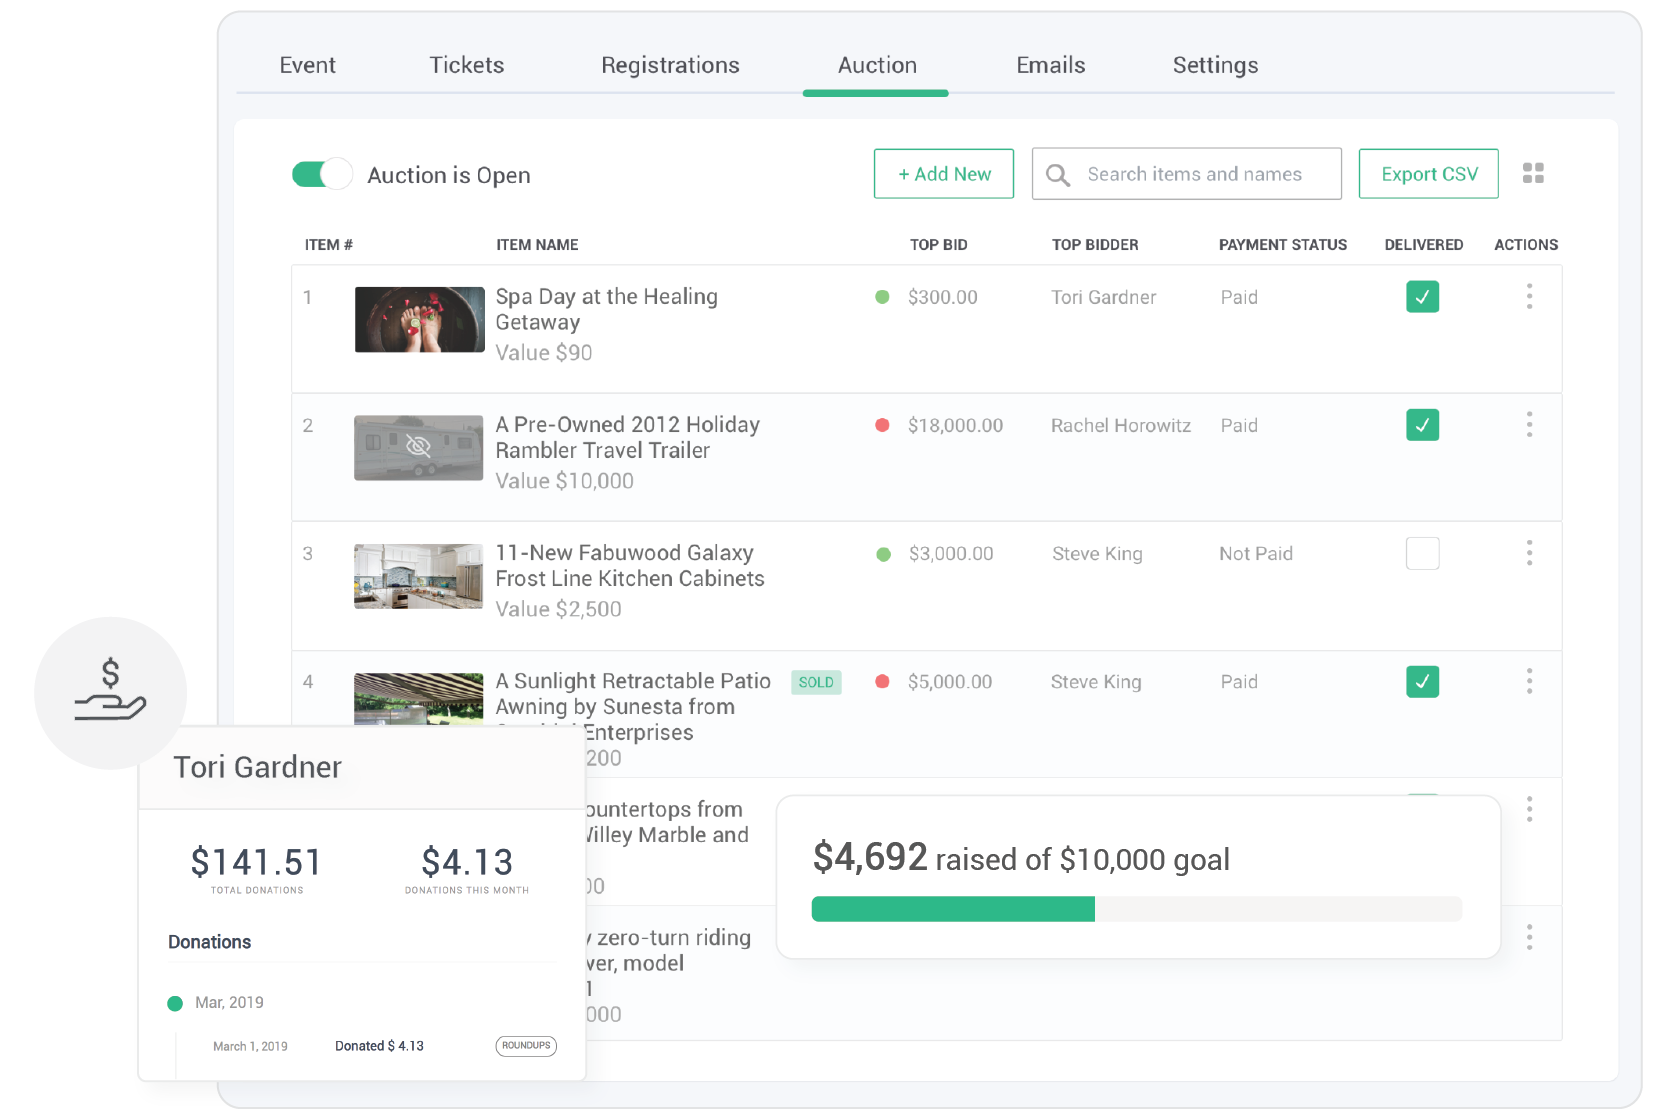 Track everything in a single database - Track bids, manage communications and acknowledge bidders from a secure database. No more endless paperwork after your auction event.